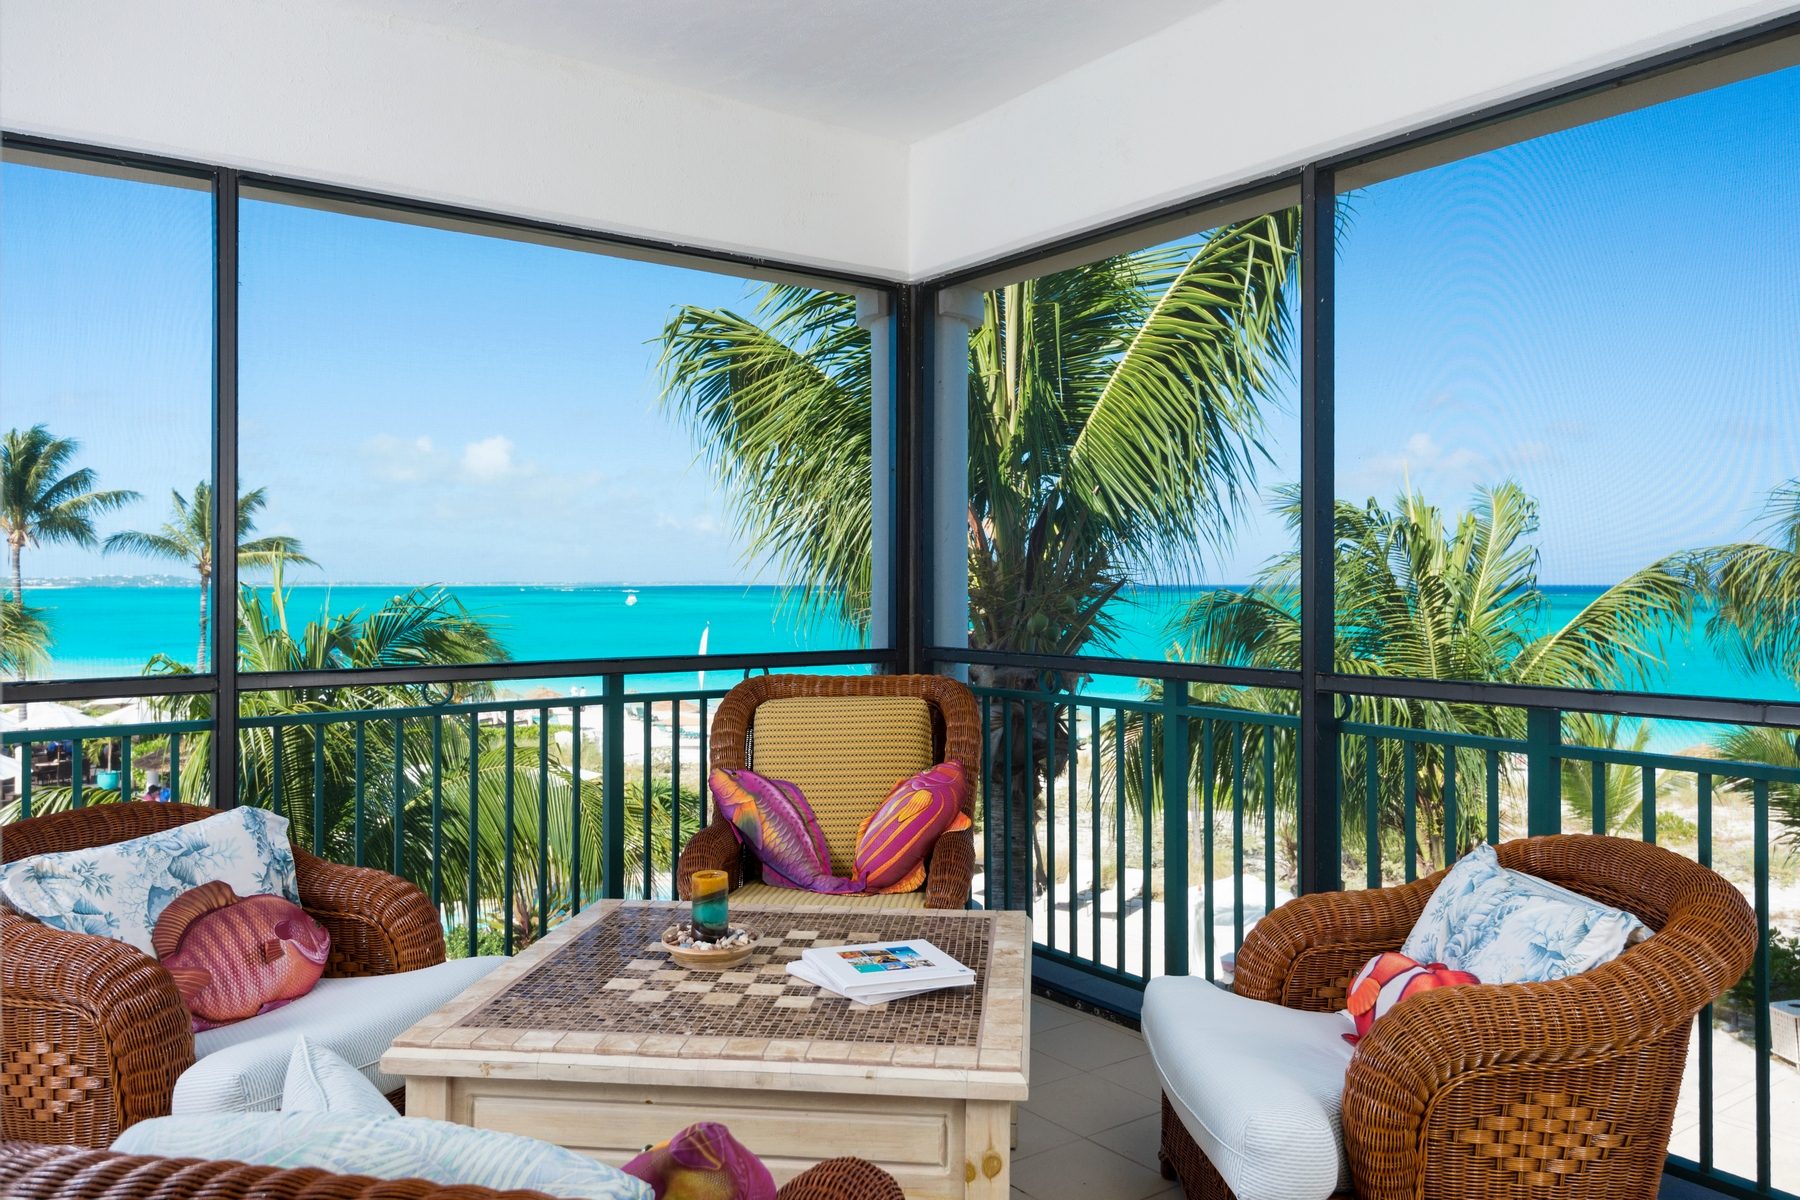 Condomínio para Venda às The Sands Penthouse 3303.04 Beachfront Grace Bay, Providenciales, TC Turks E Caicos